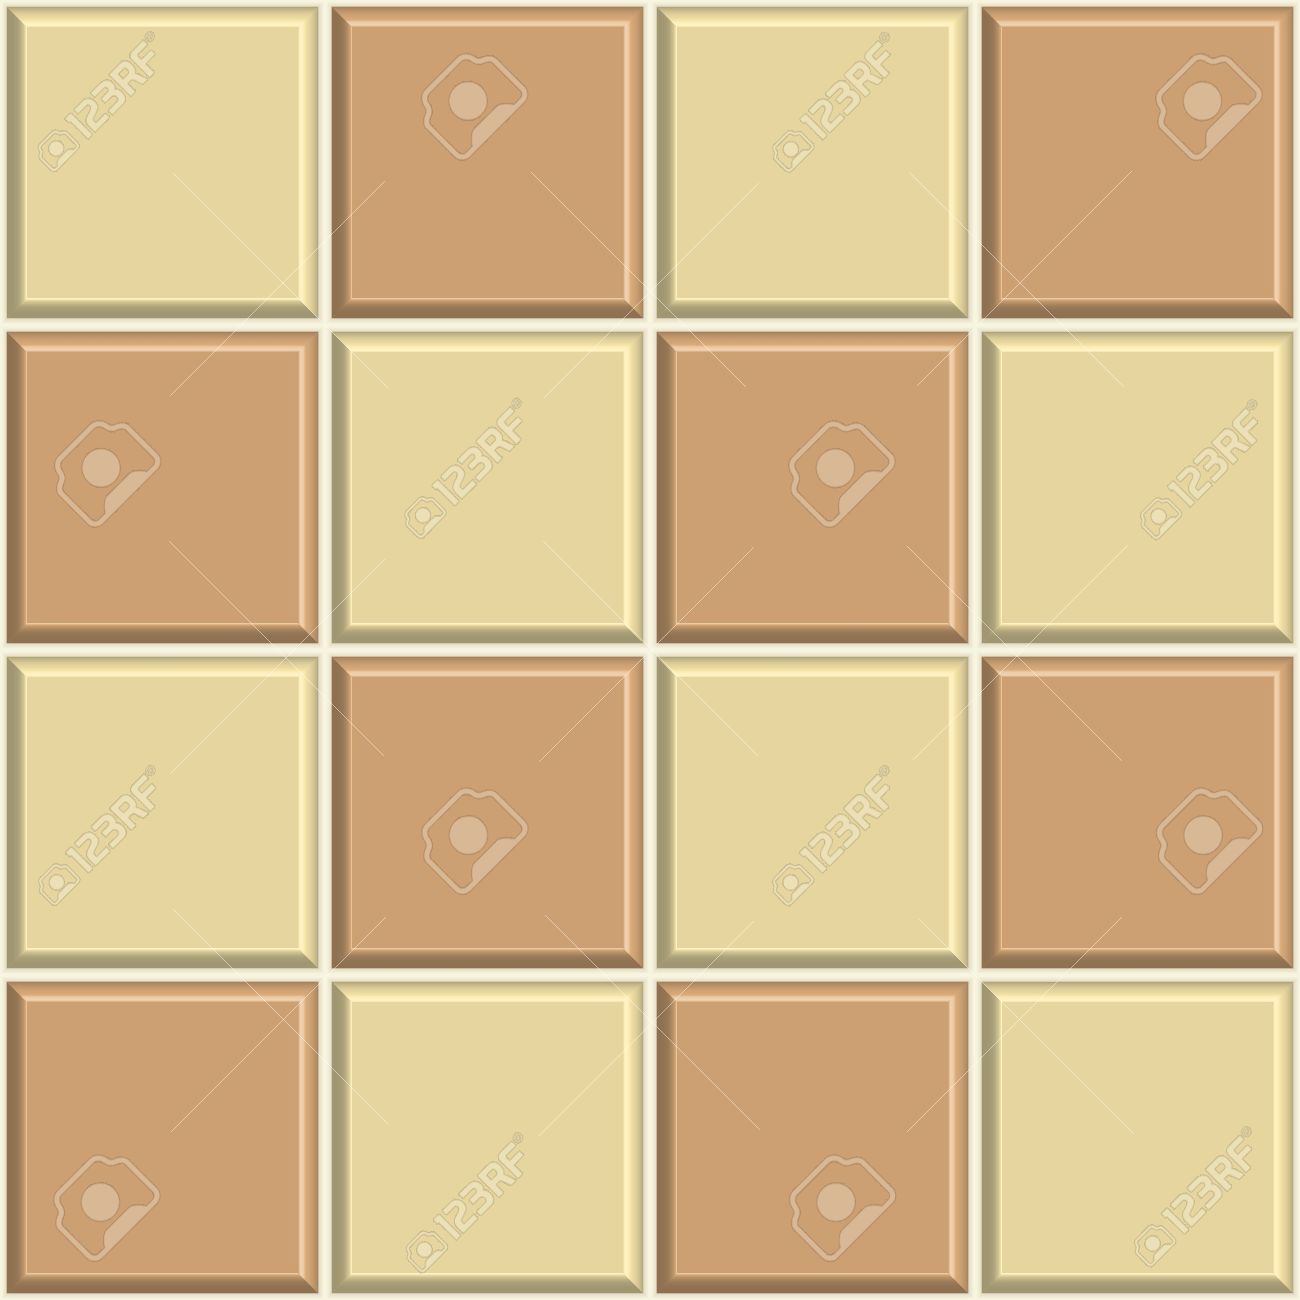 Tiles clipart bath Clip Tile Art 20 Tiles